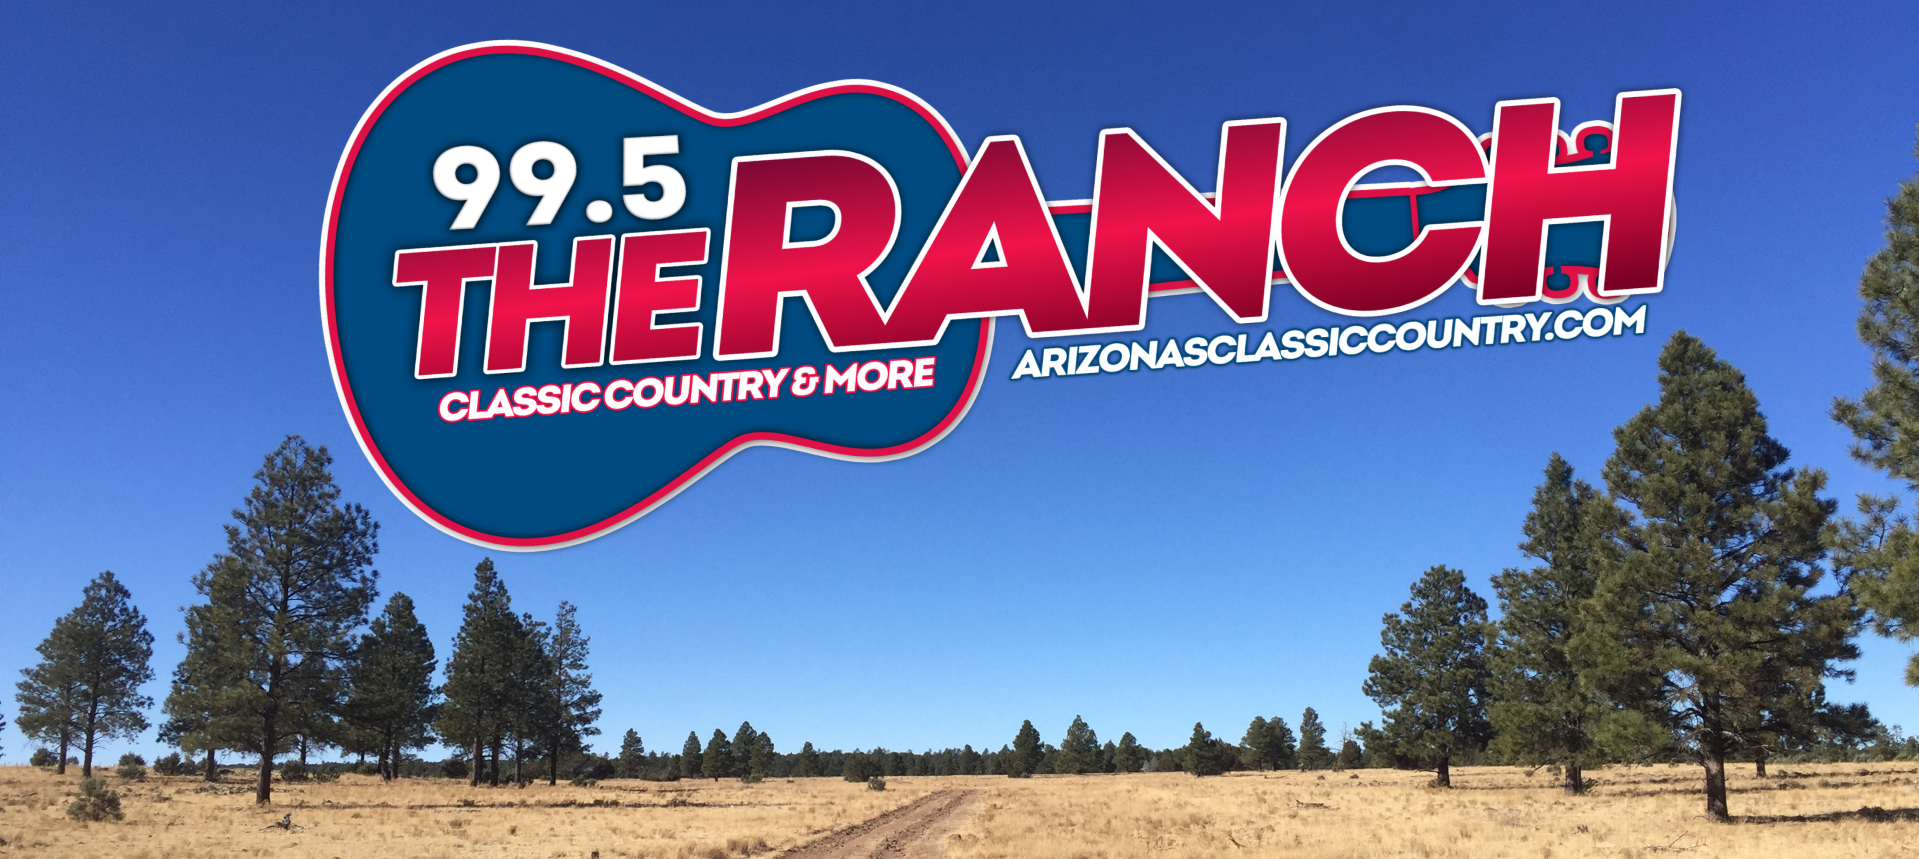 99.5 The Ranch – Classic Country Radio in Arizona